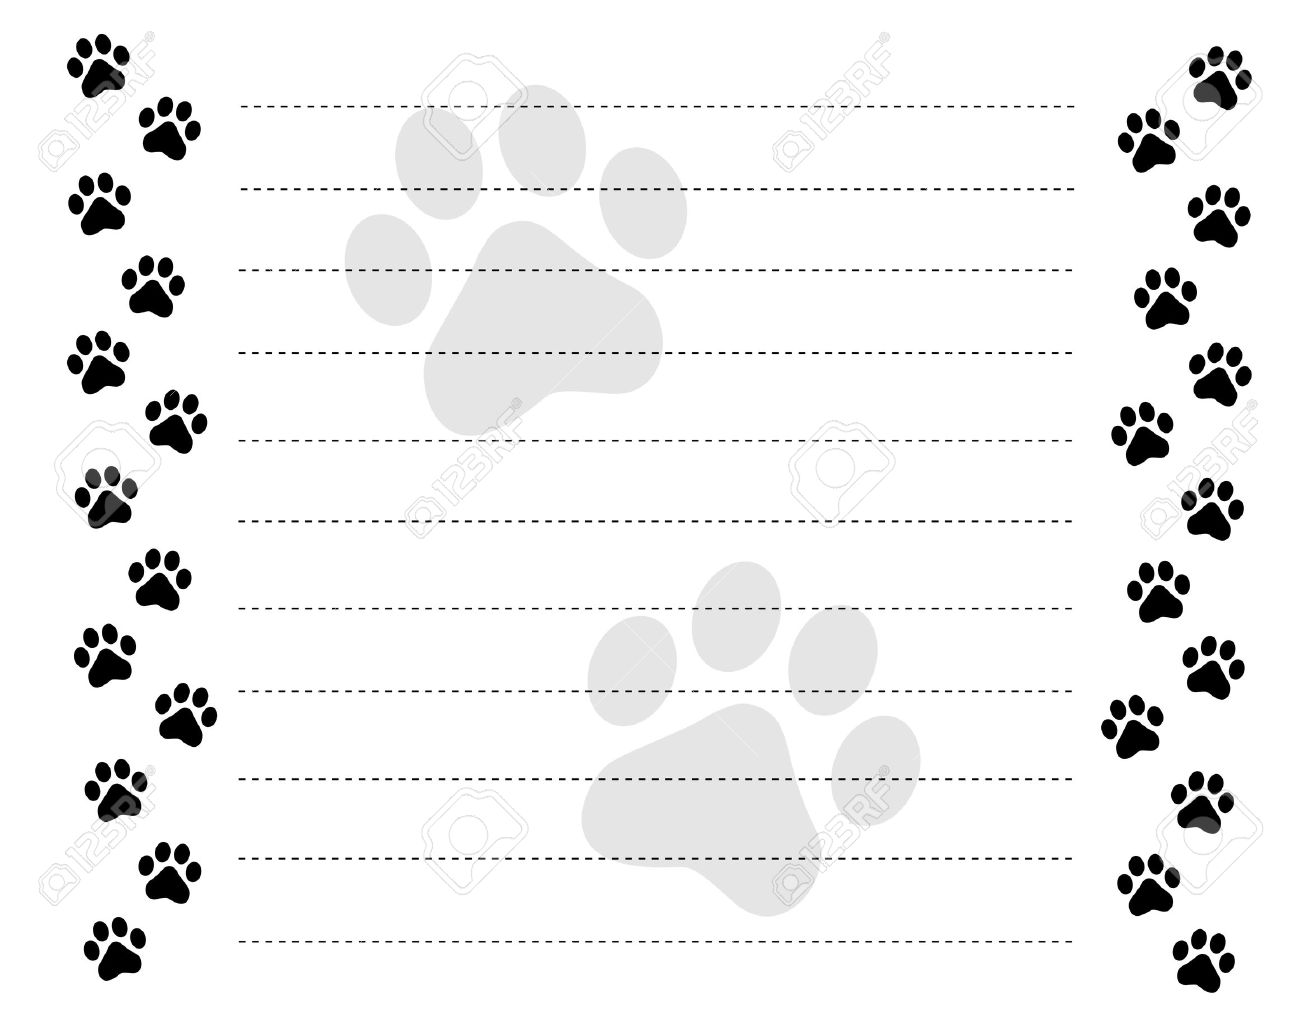 Worksheets Dotted Line Page black and white paw prints border frame on a dotted line background stock vector